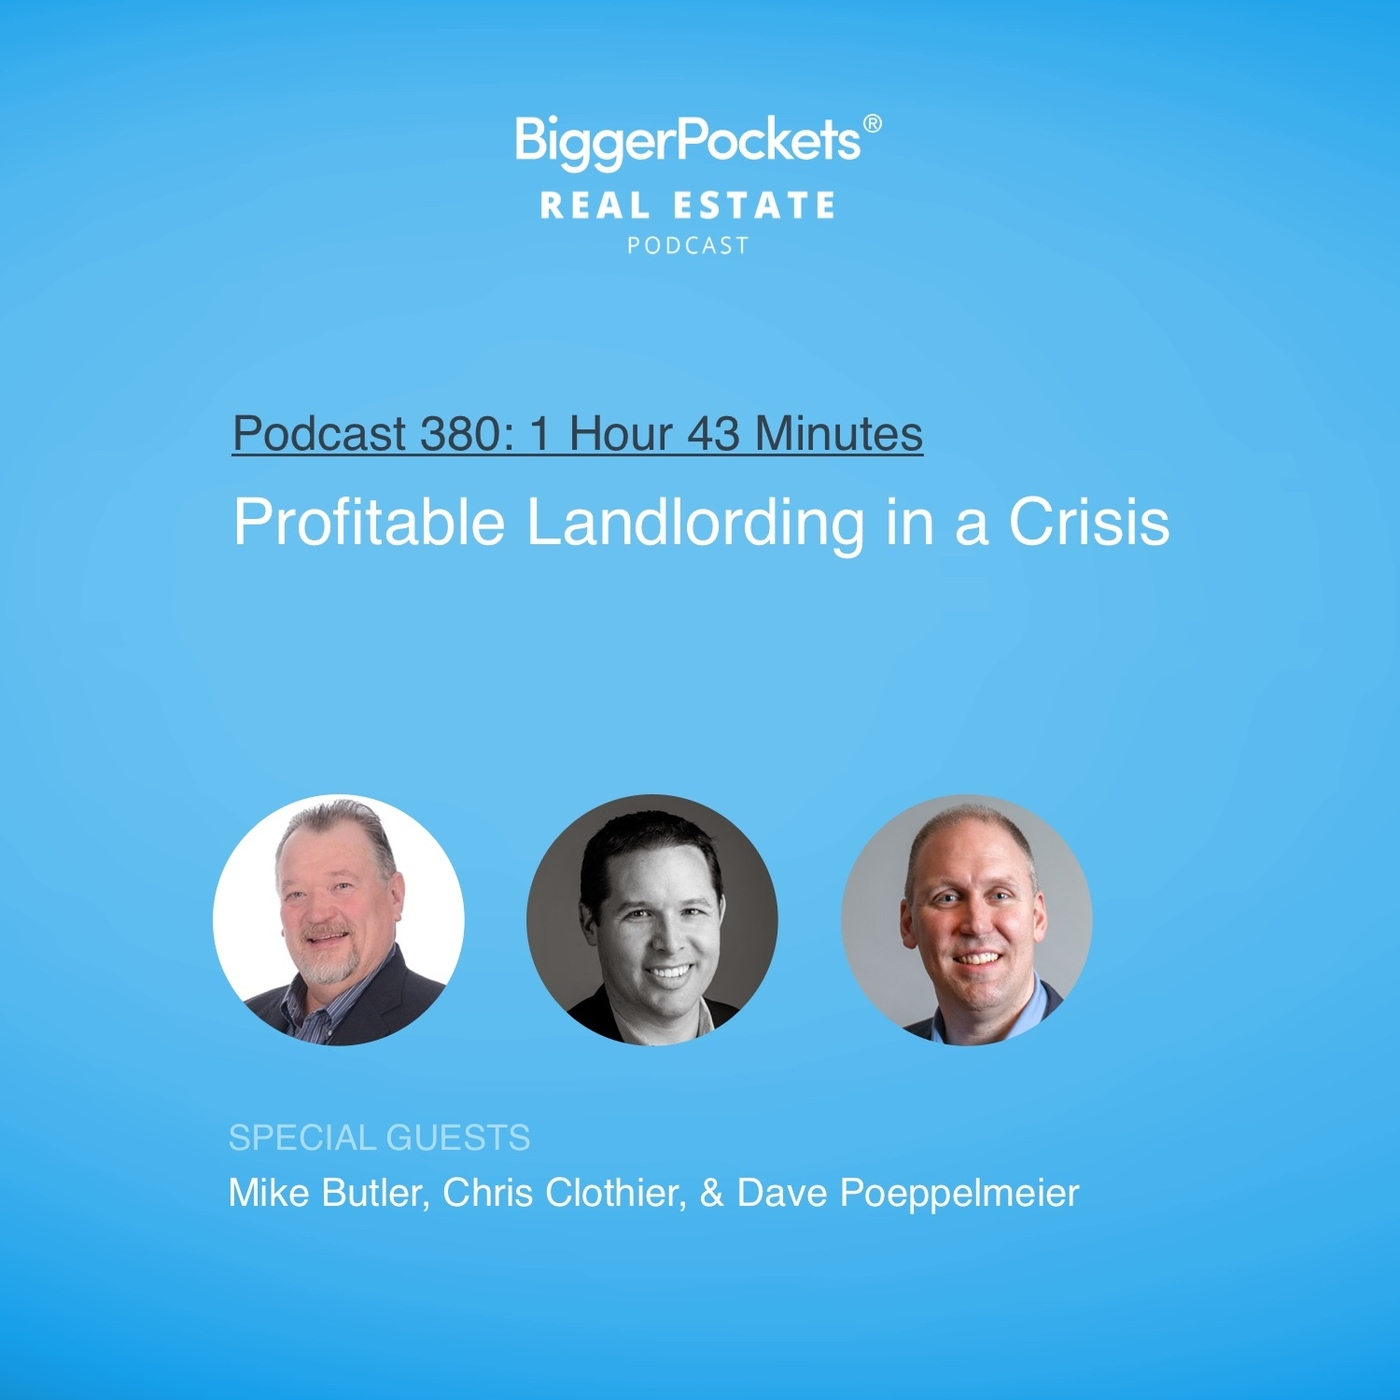 380: Profitable Landlording in a Crisis with Mike Butler, Chris Clothier, and Dave Poeppelmeier